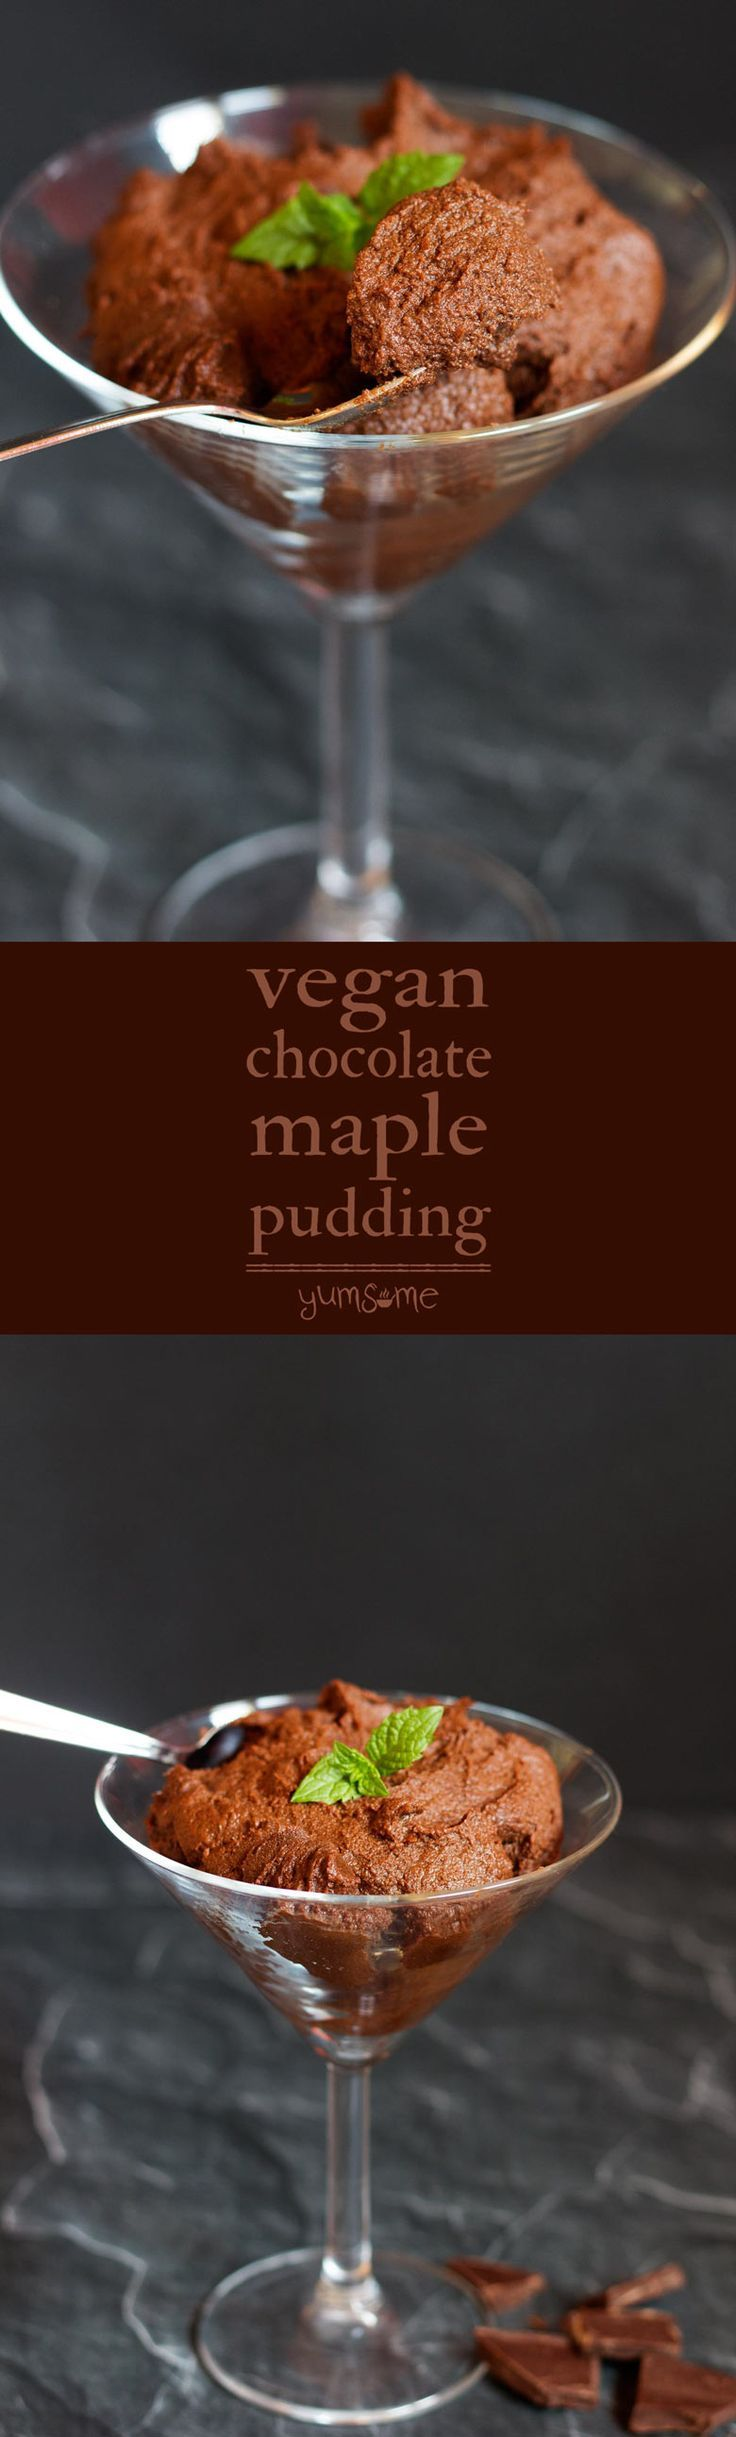 My easy healthy vegan chocolate maple pudding is sweet and velvety-smooth, takes just 10 minutes to make, and is legitimately good for you too!   yumsome.com via @yums0me